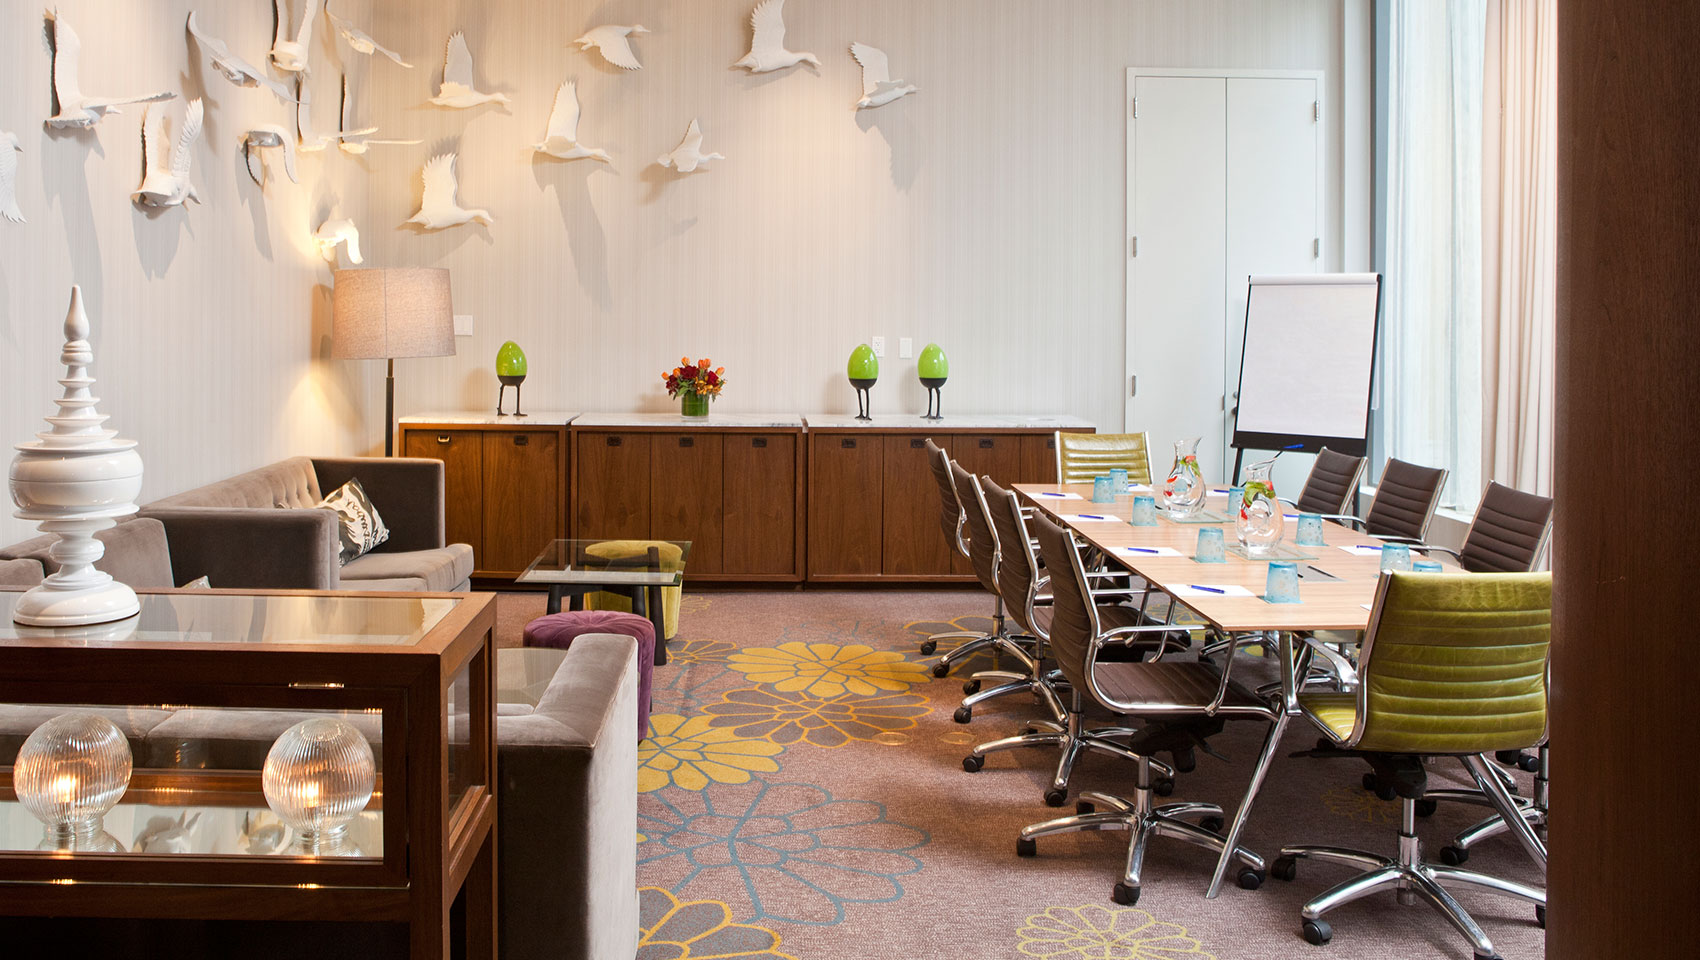 Kimpton Hotel Eventi meetings and events